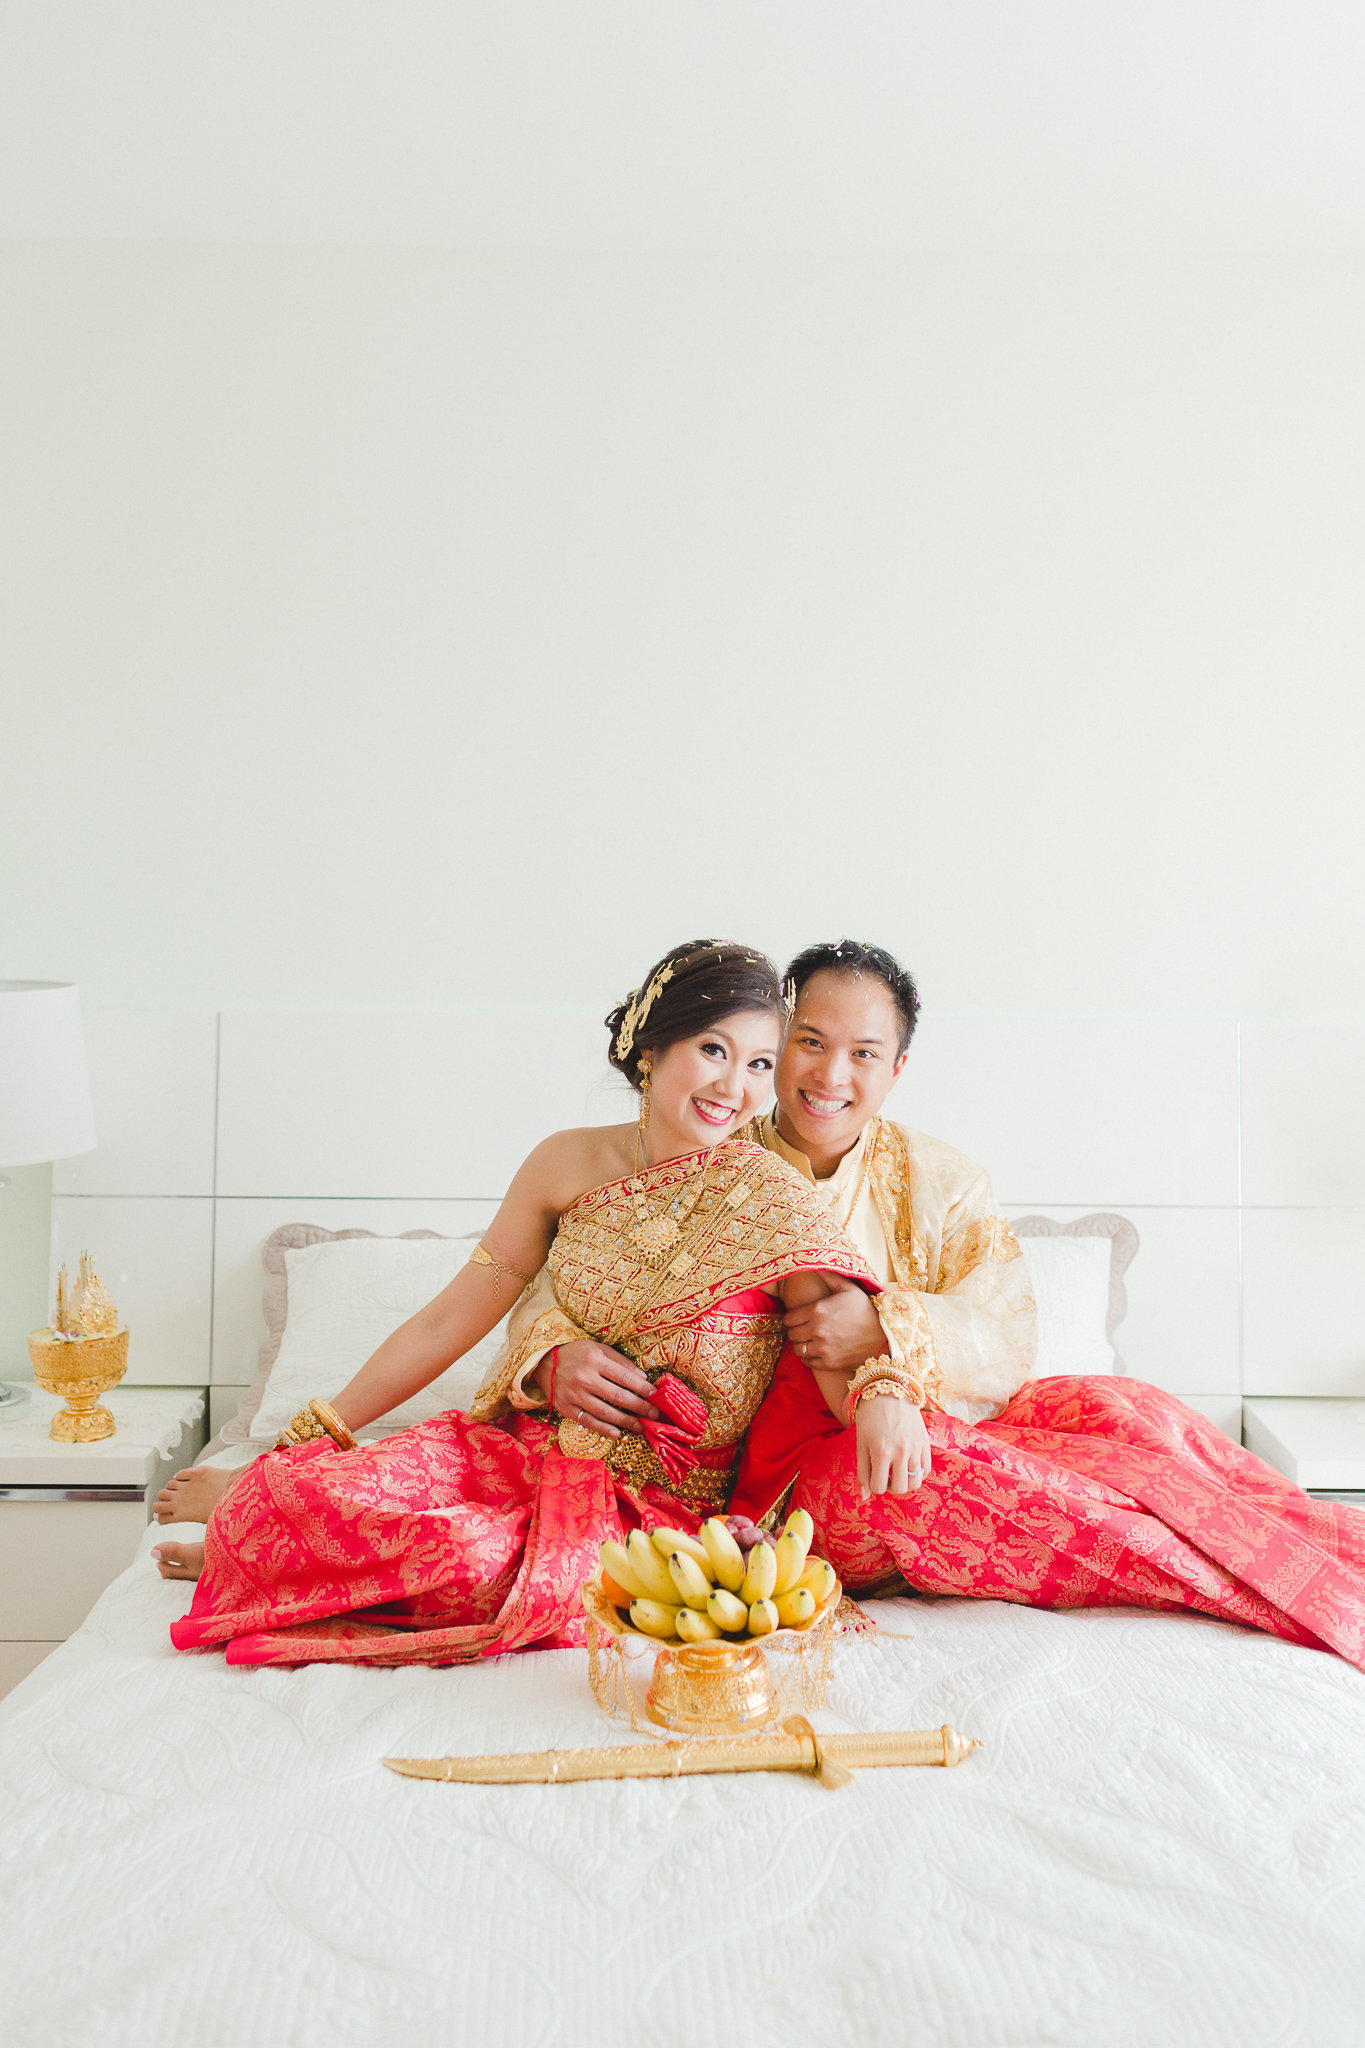 photographe-montreal-mariage-culturel-traditionnel-cambodgien-lisa-renault-photographie-traditional-cultural-cambodian-wedding-82